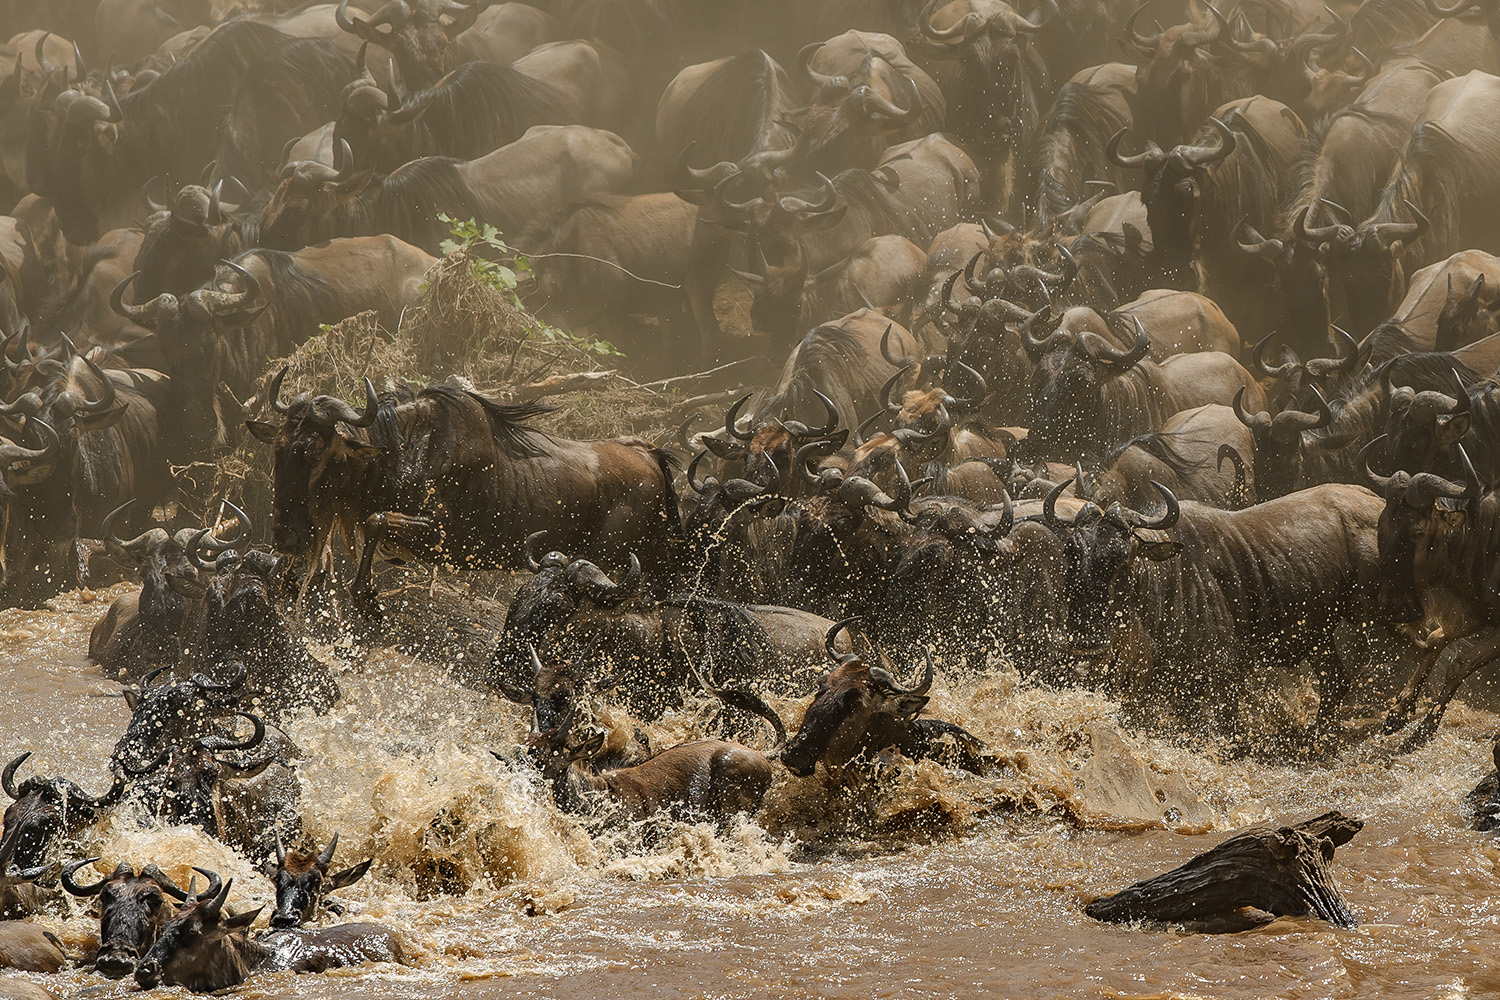 Chaos at a wildebeest crossing the great migration